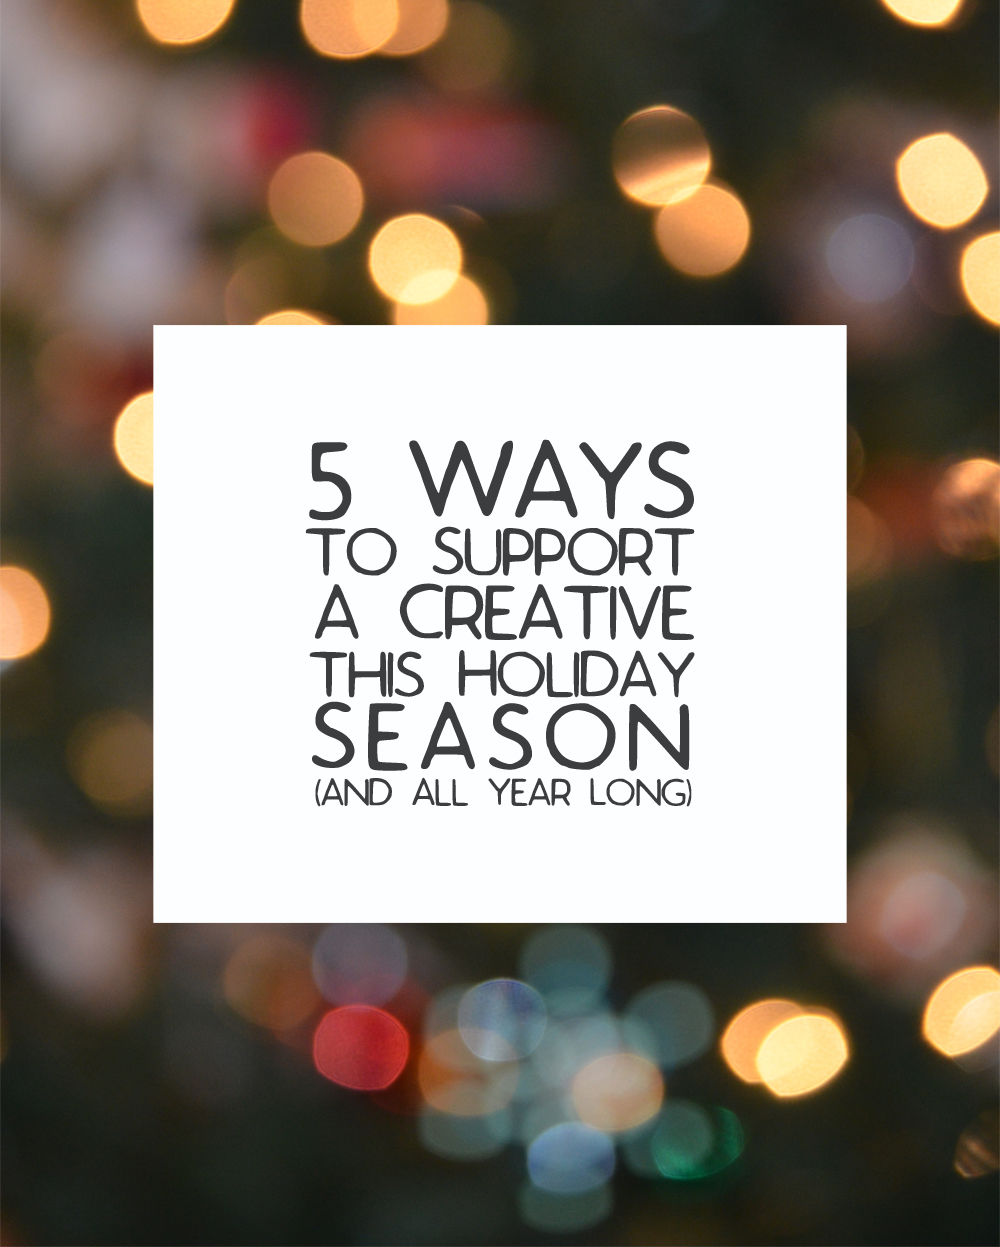 5 Ways to Support a Creative this Holiday Season (and All Year Long)